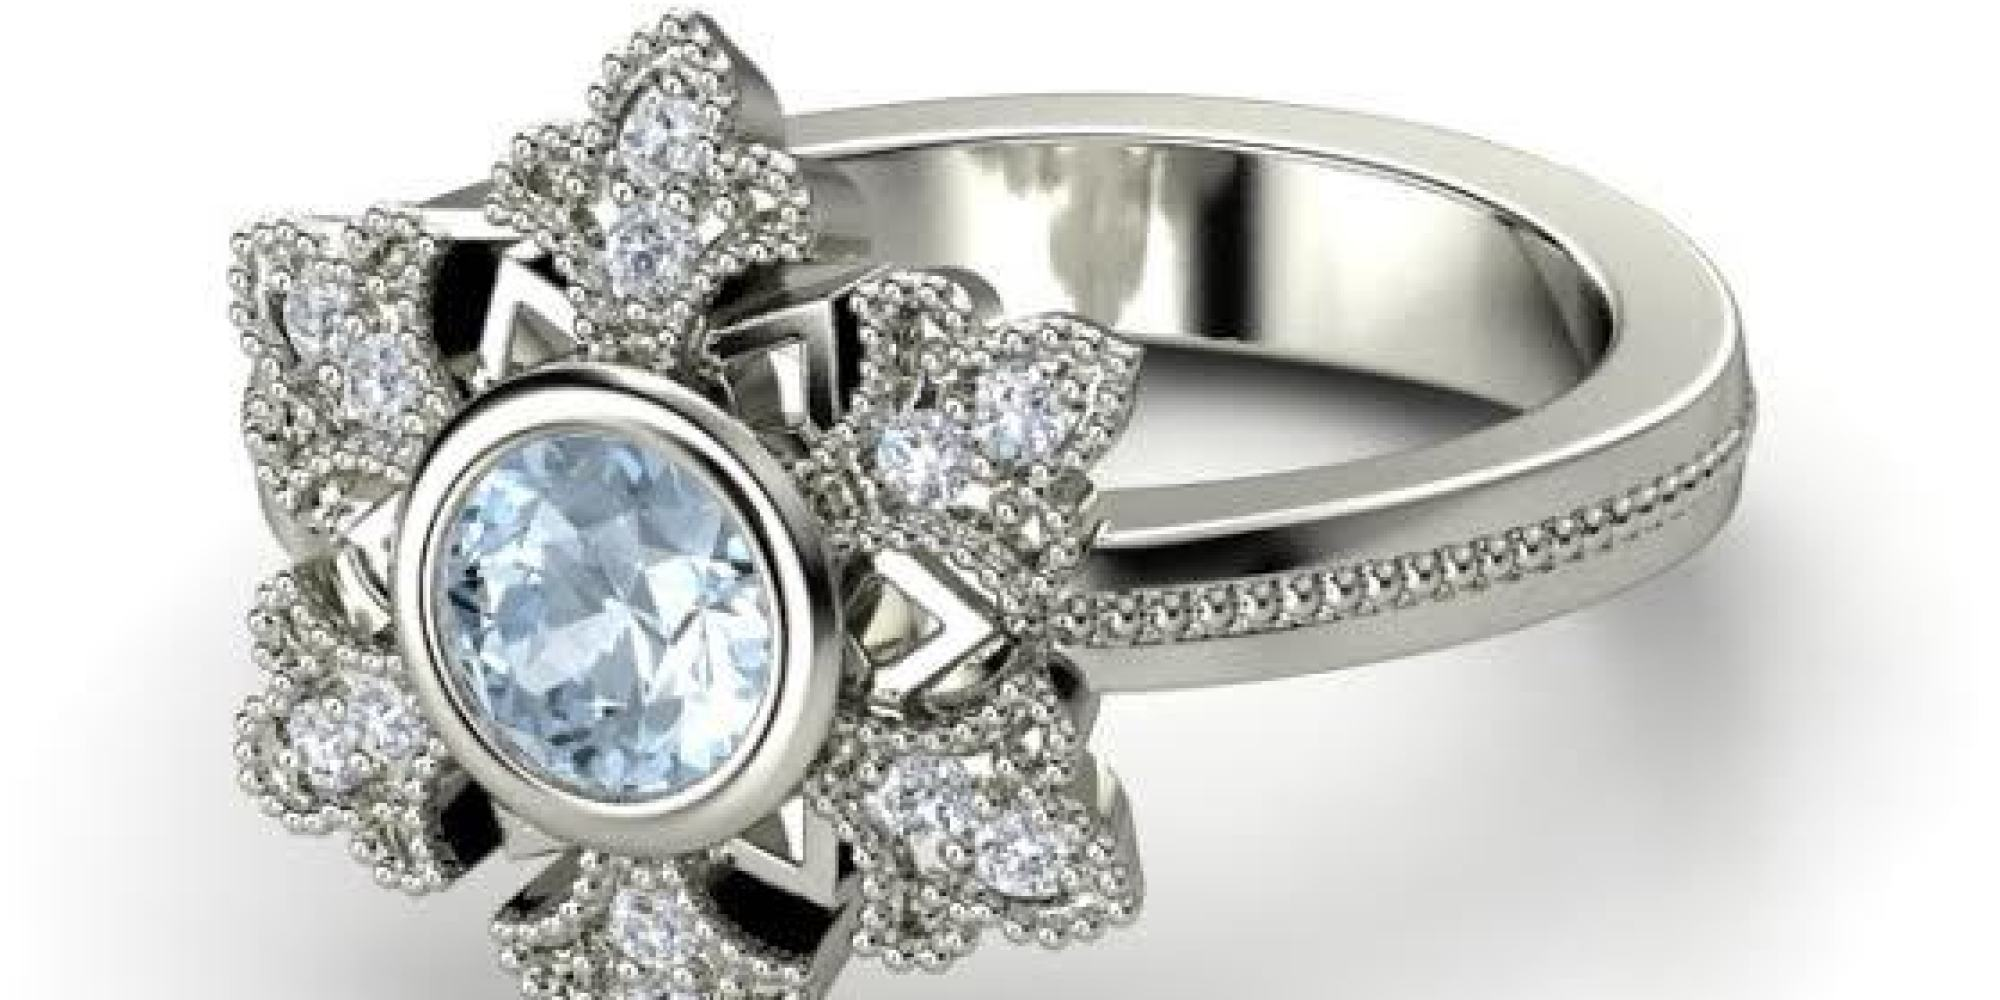 rings engagement designer winstone inspired f large ring l aimee dofleini ocean wedding guides